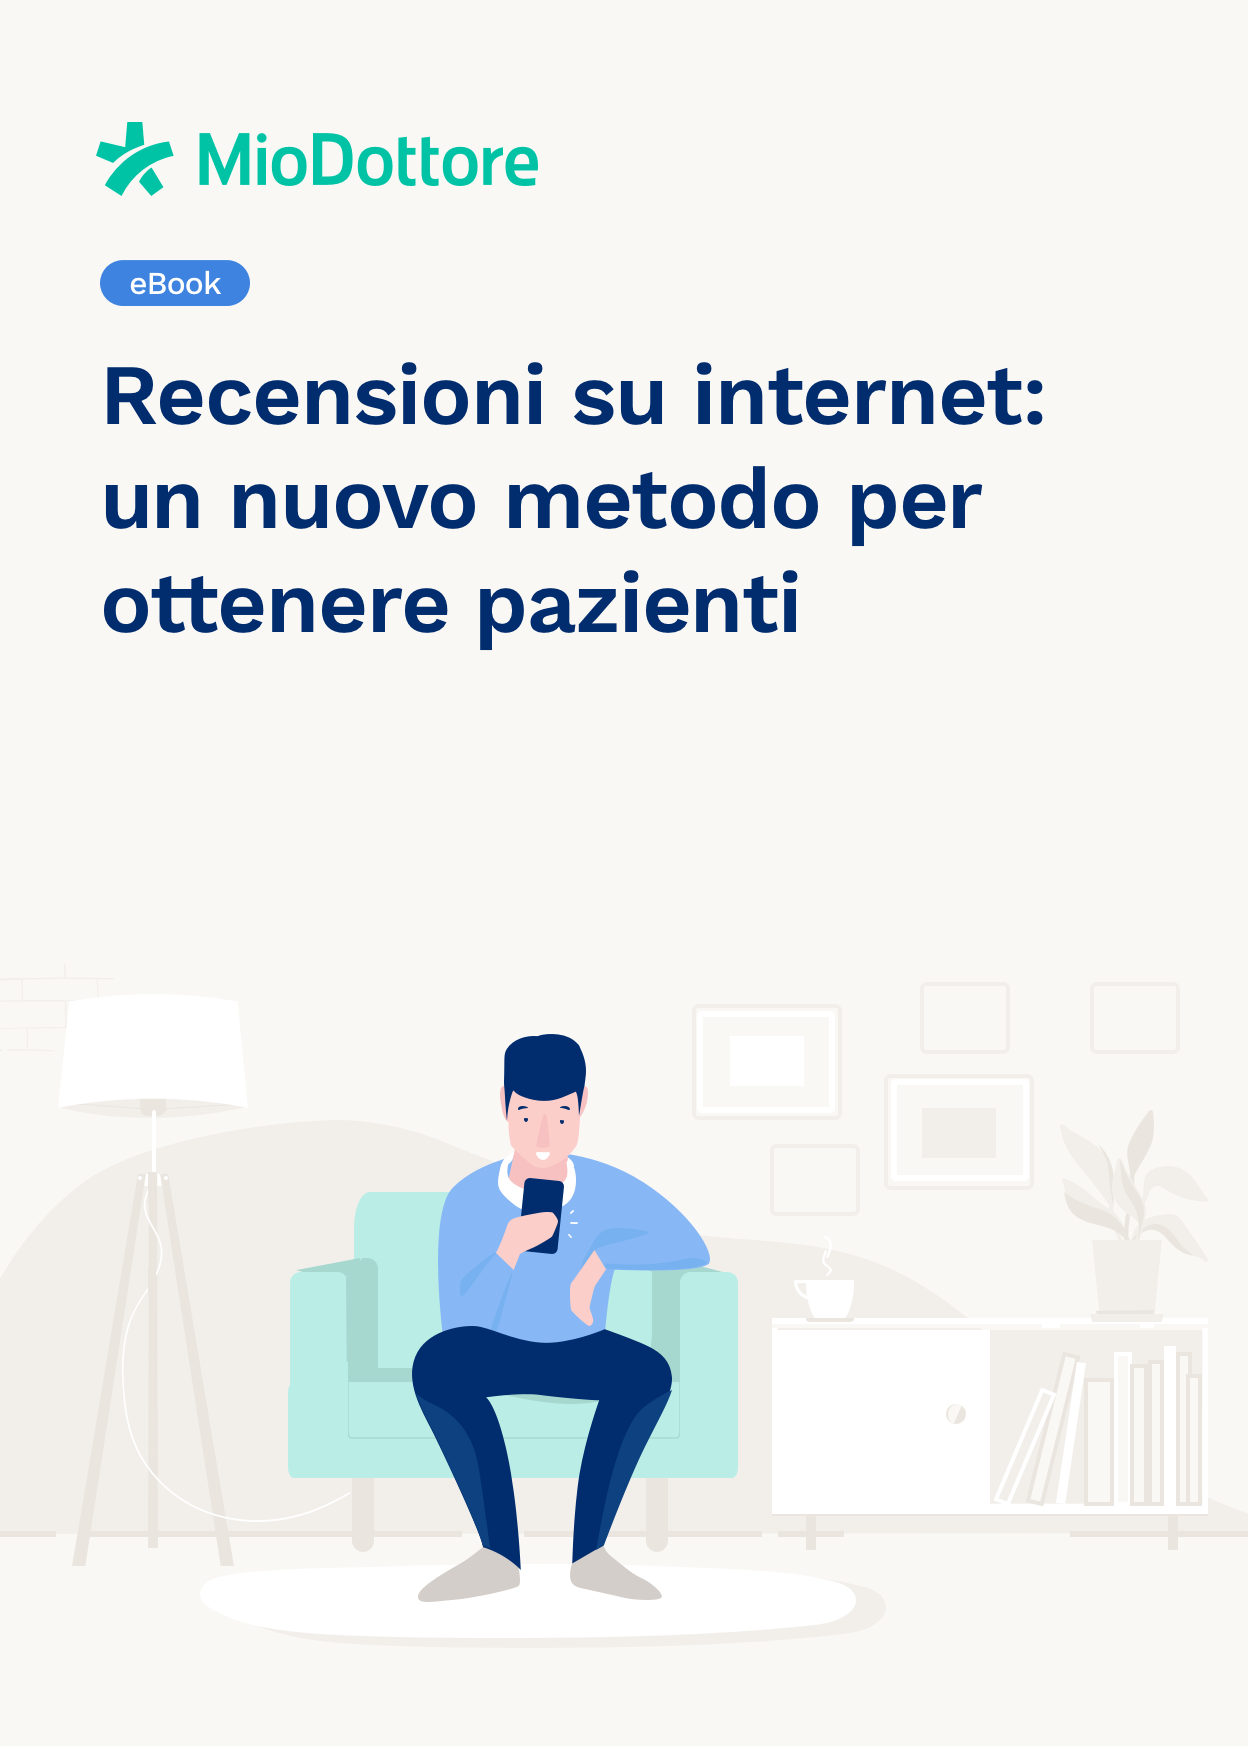 shareable-it-ebook-recensioni-internet-ottenere-pazienti-cover